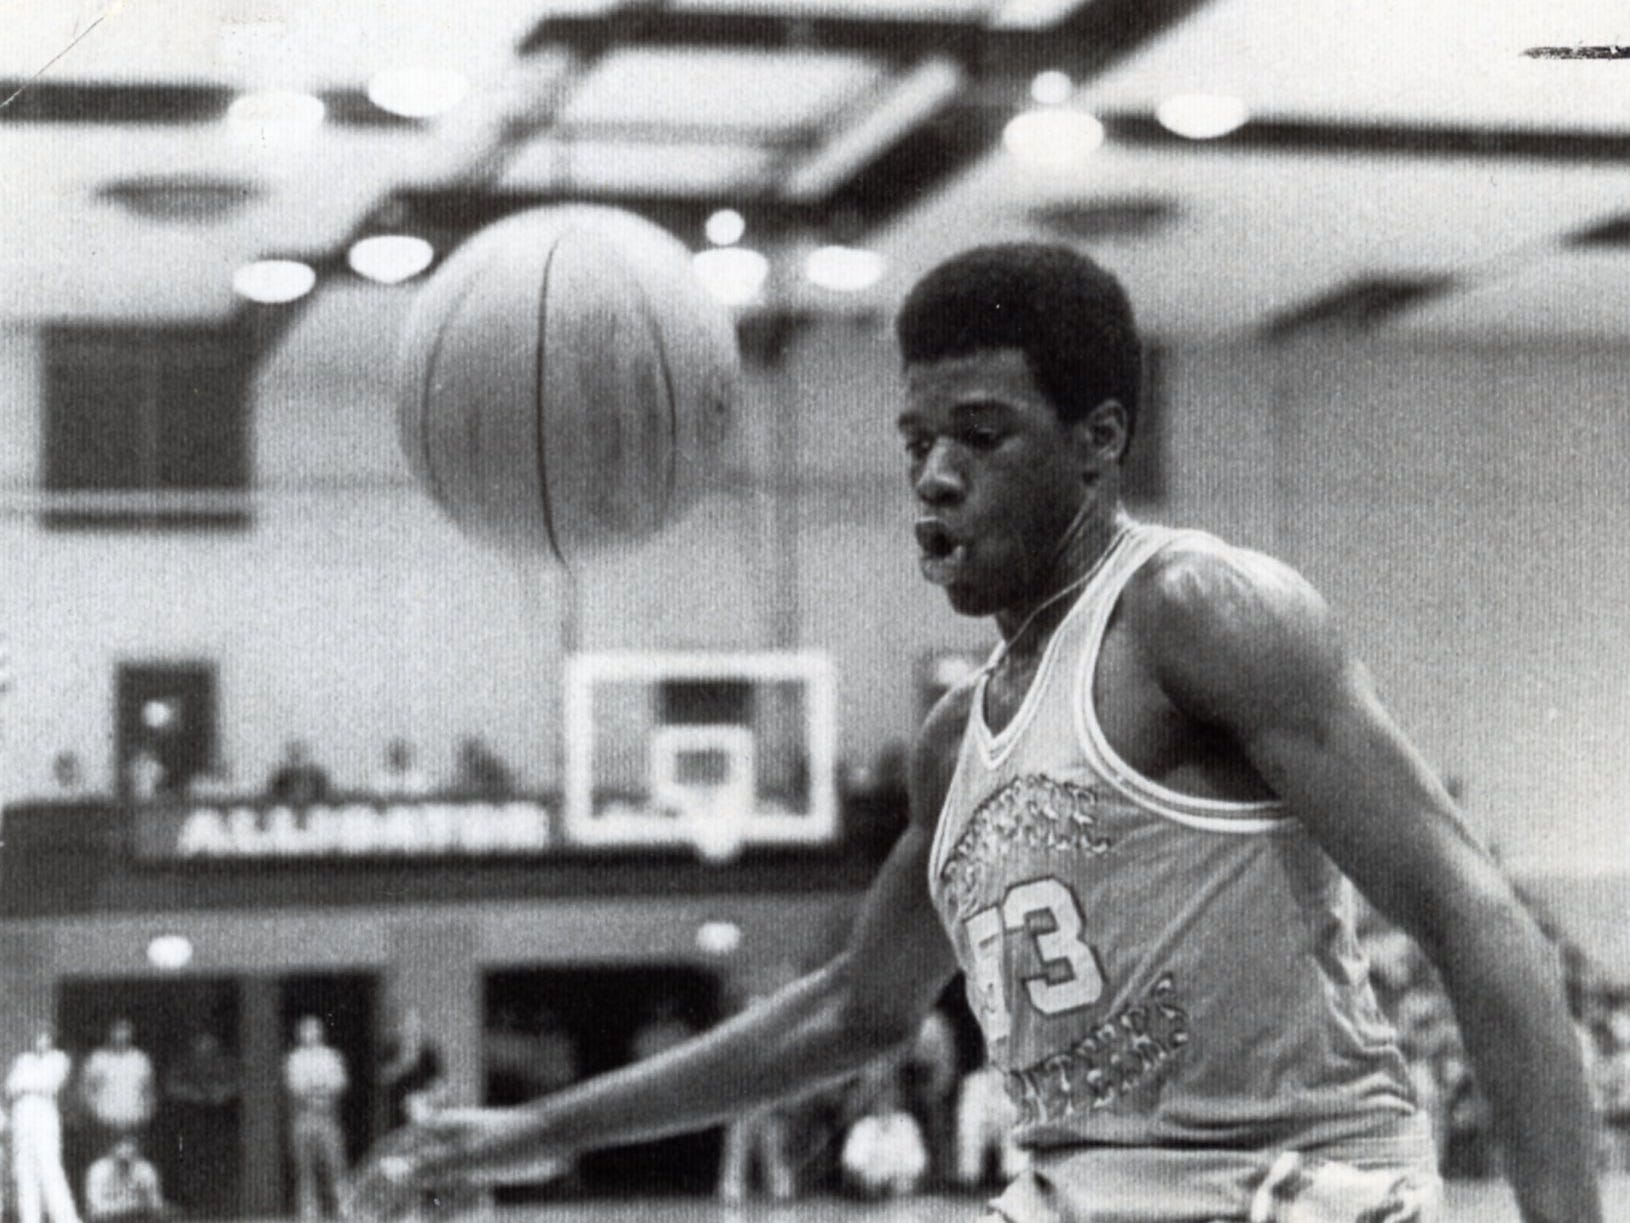 Bernard King during a game in Gainesville, February, 1976.